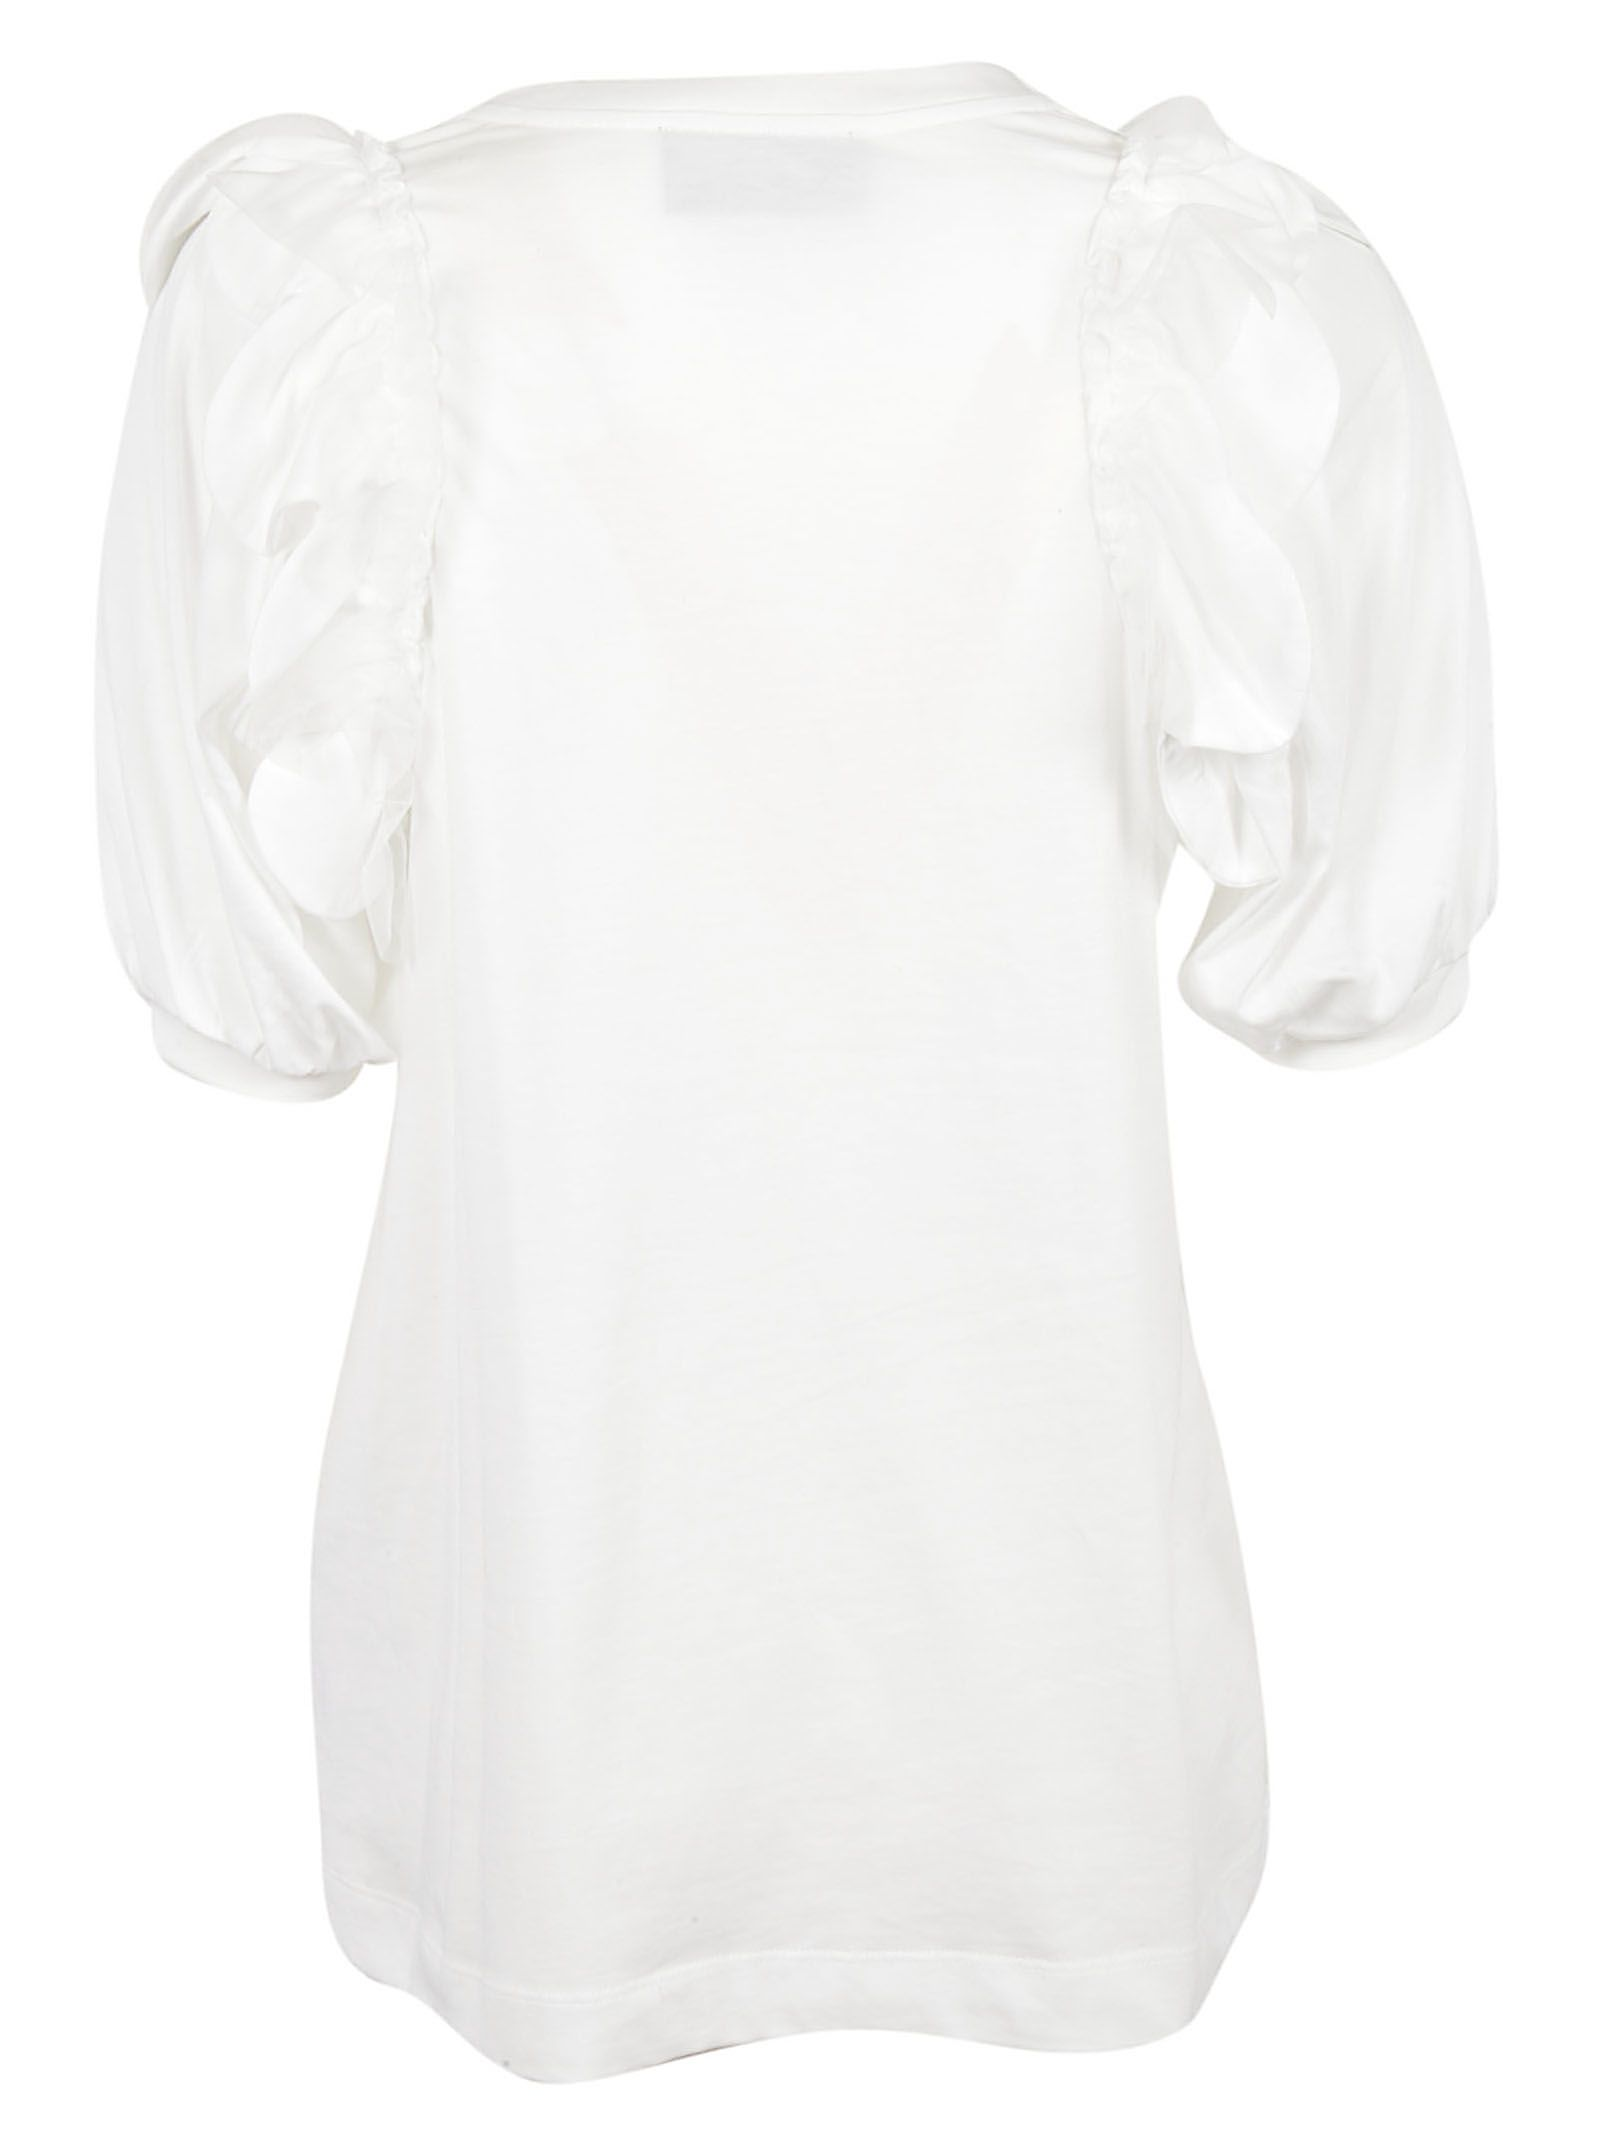 Professional Cheap Online White Beaded Puff Sleeve T-Shirt Simone Rocha Sale Real 2018 Discount  Outlet Best Wholesale pvO41aU